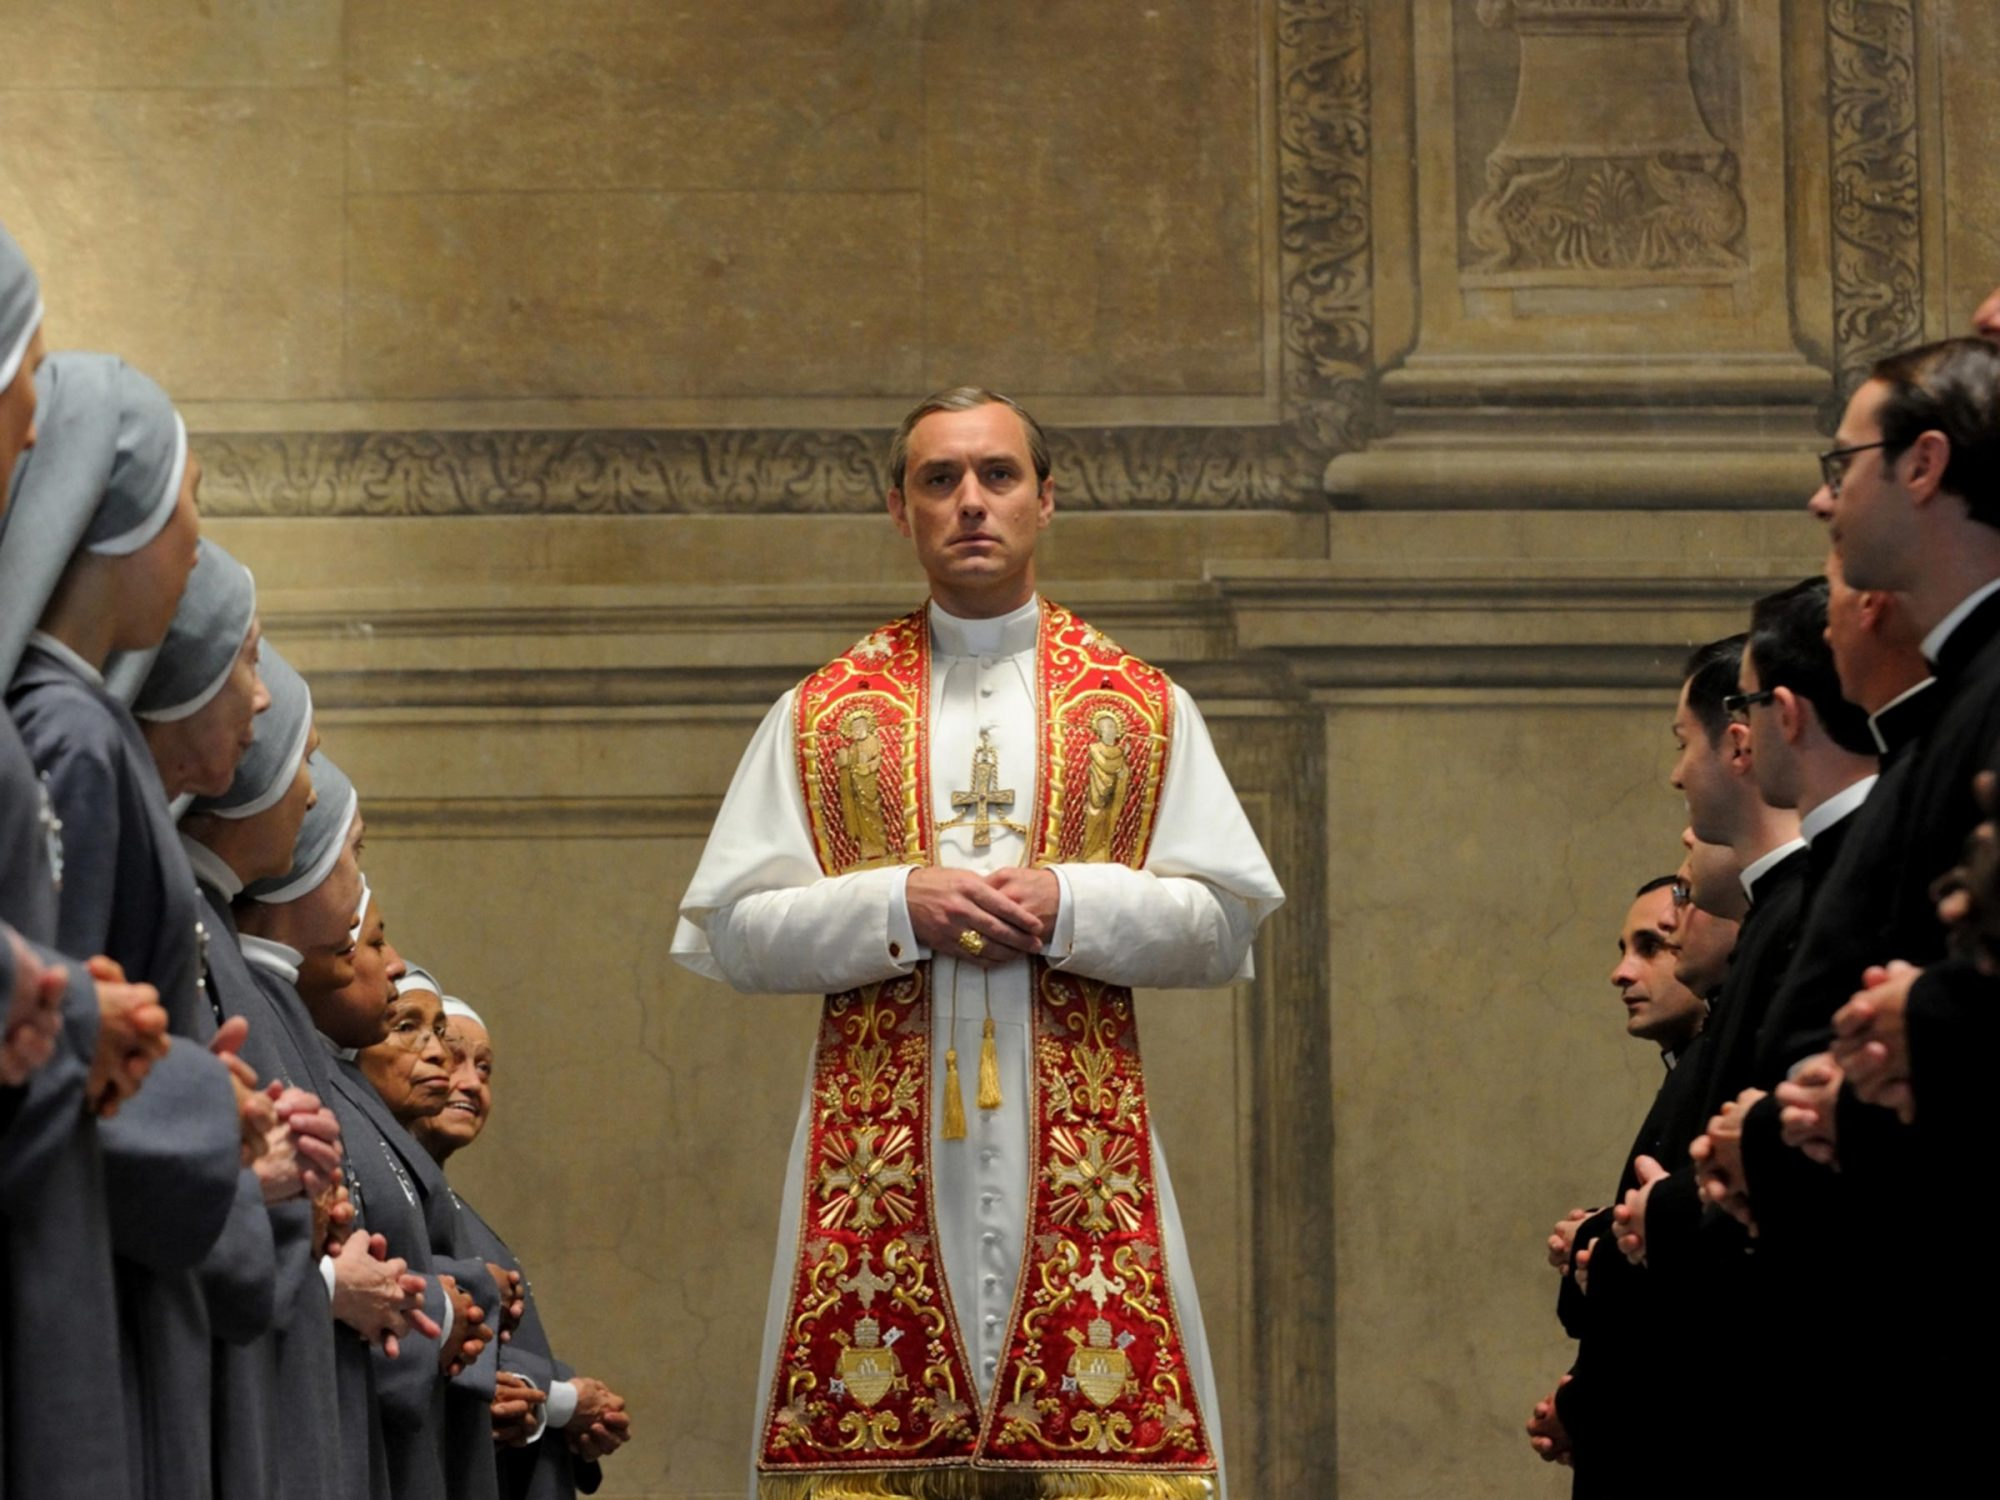 Pope Pius XIII, a.k.a. Lenny Belardo (Jude Law), on The Young Pope